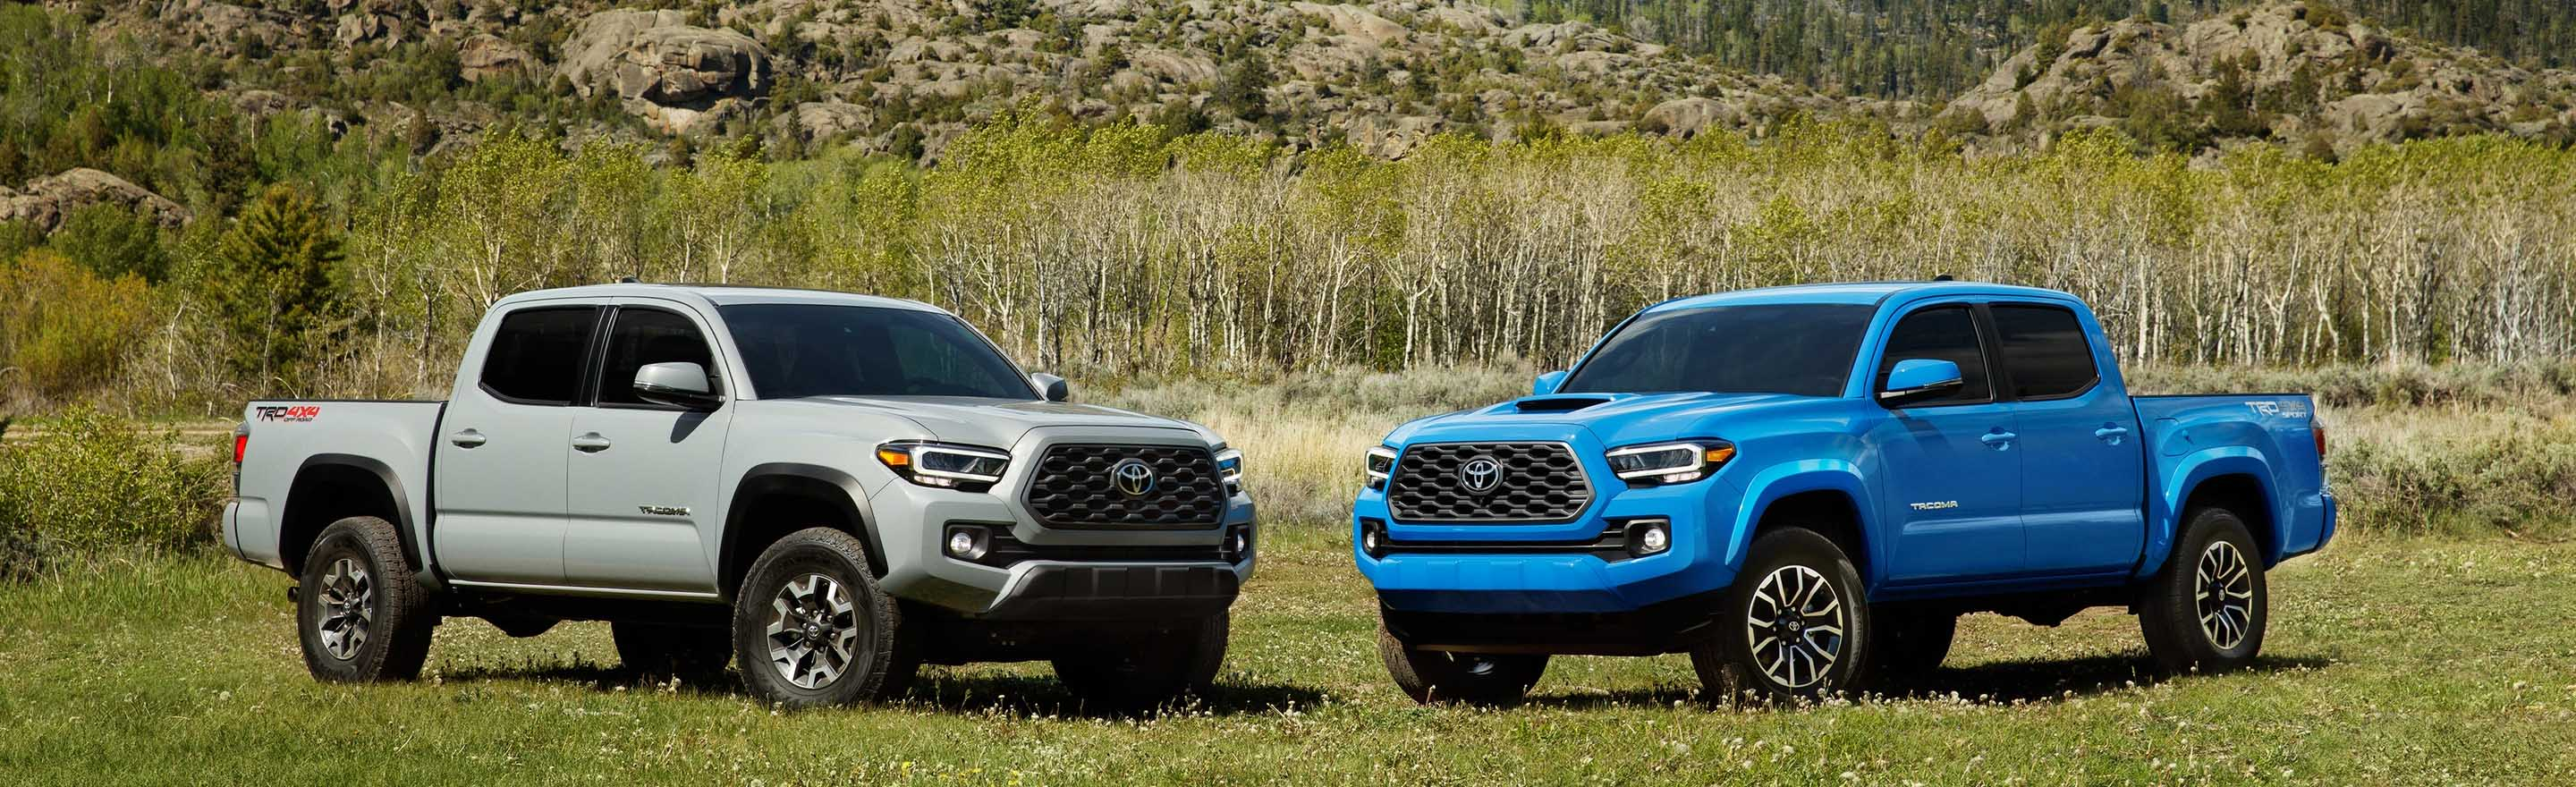 Explore The Features Of The 2020 Toyota Tacoma In Greensburg, PA